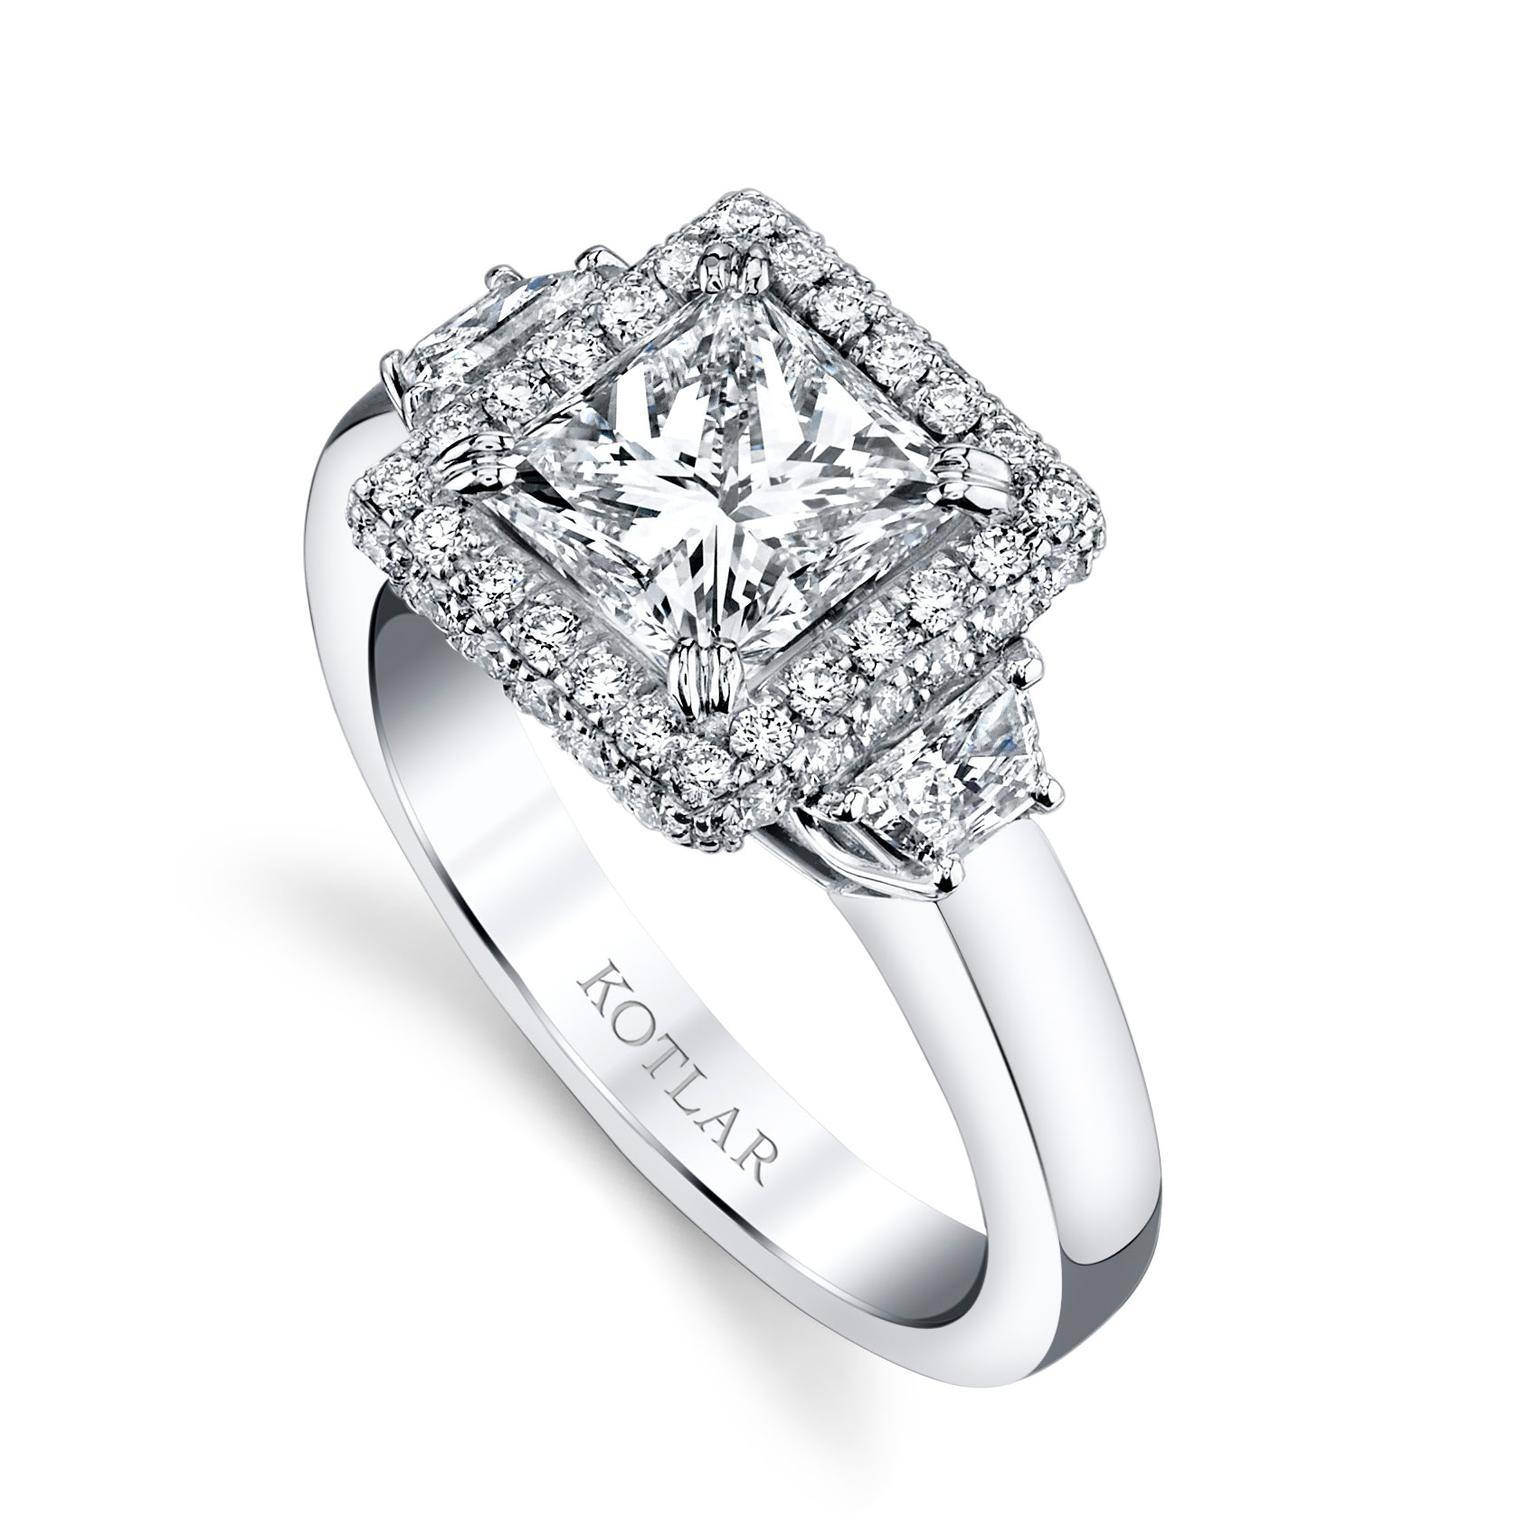 The Romantic Appeal Of Princess Cut Engagement Rings | The For Unique Princess Cut Diamond Engagement Rings (View 11 of 15)